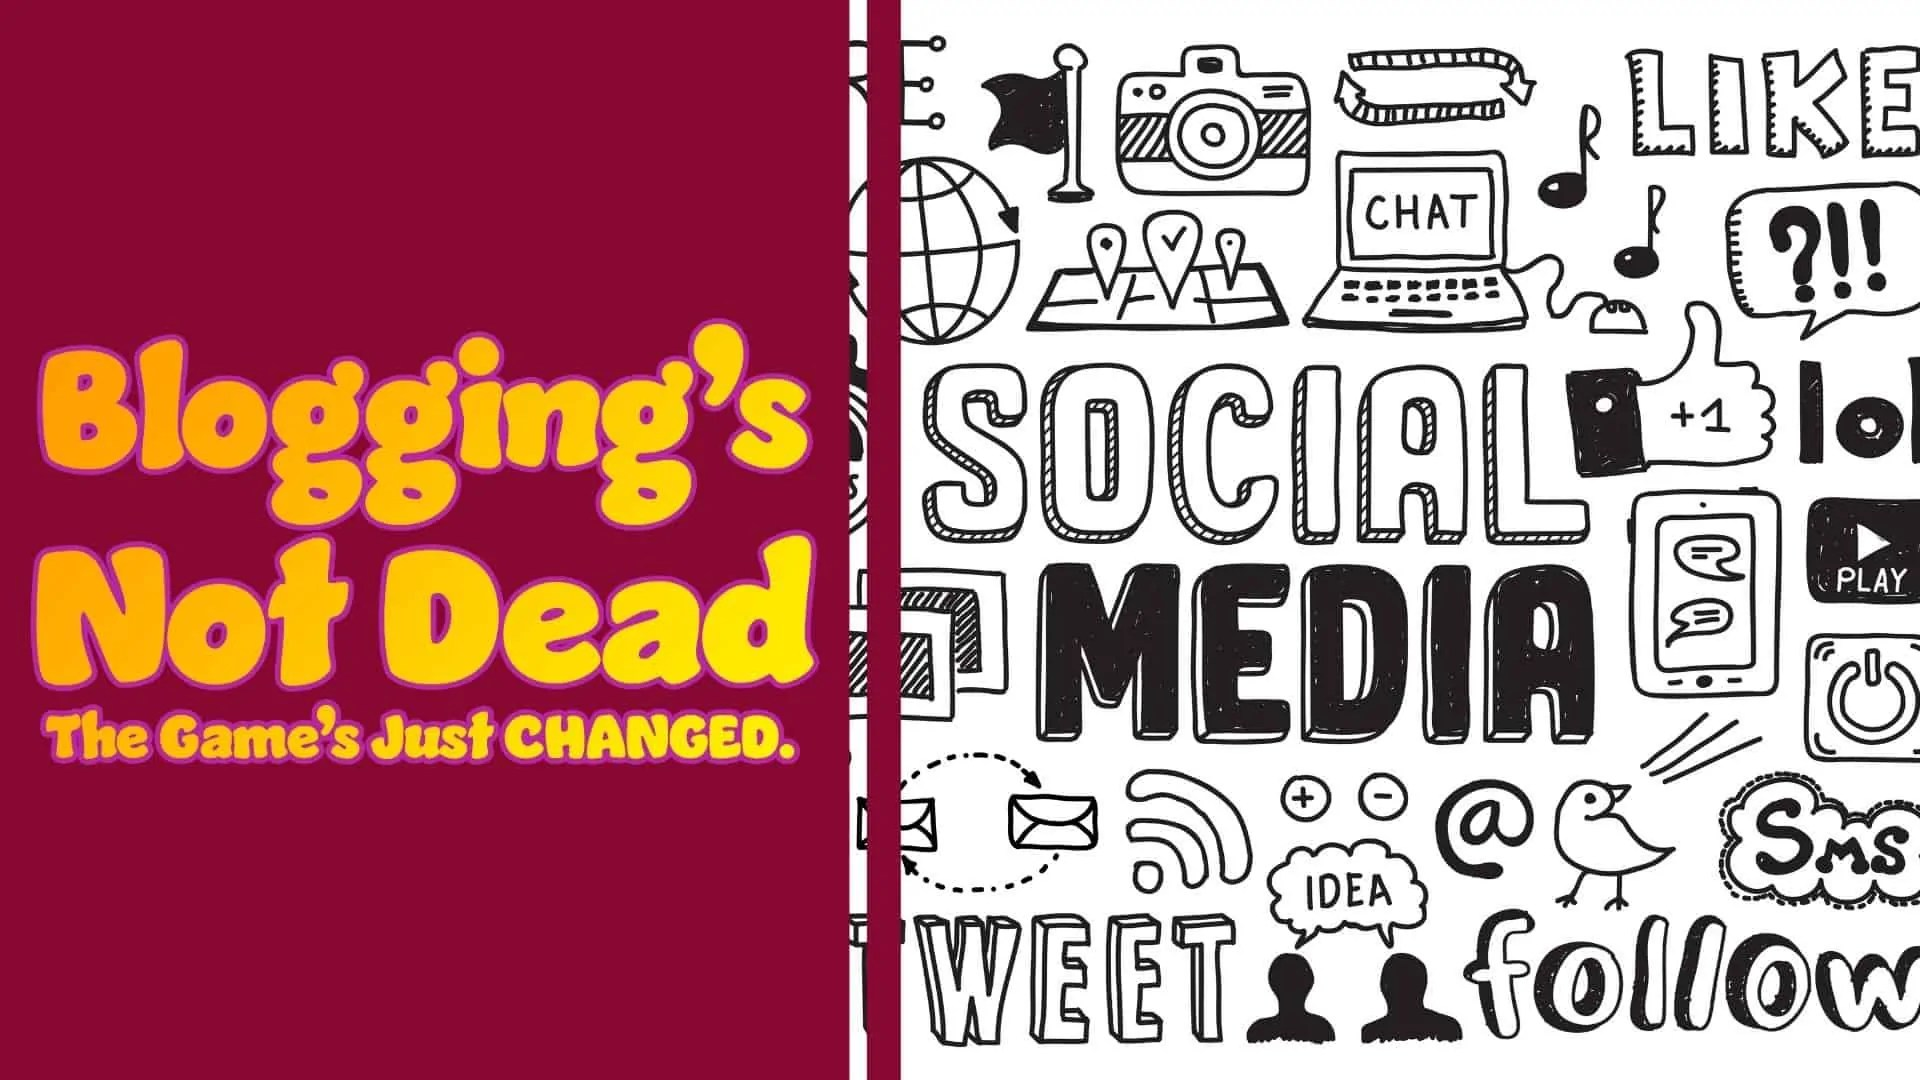 Blogging's Not Dead, The Game's Just CHANGED. (Featured Image)